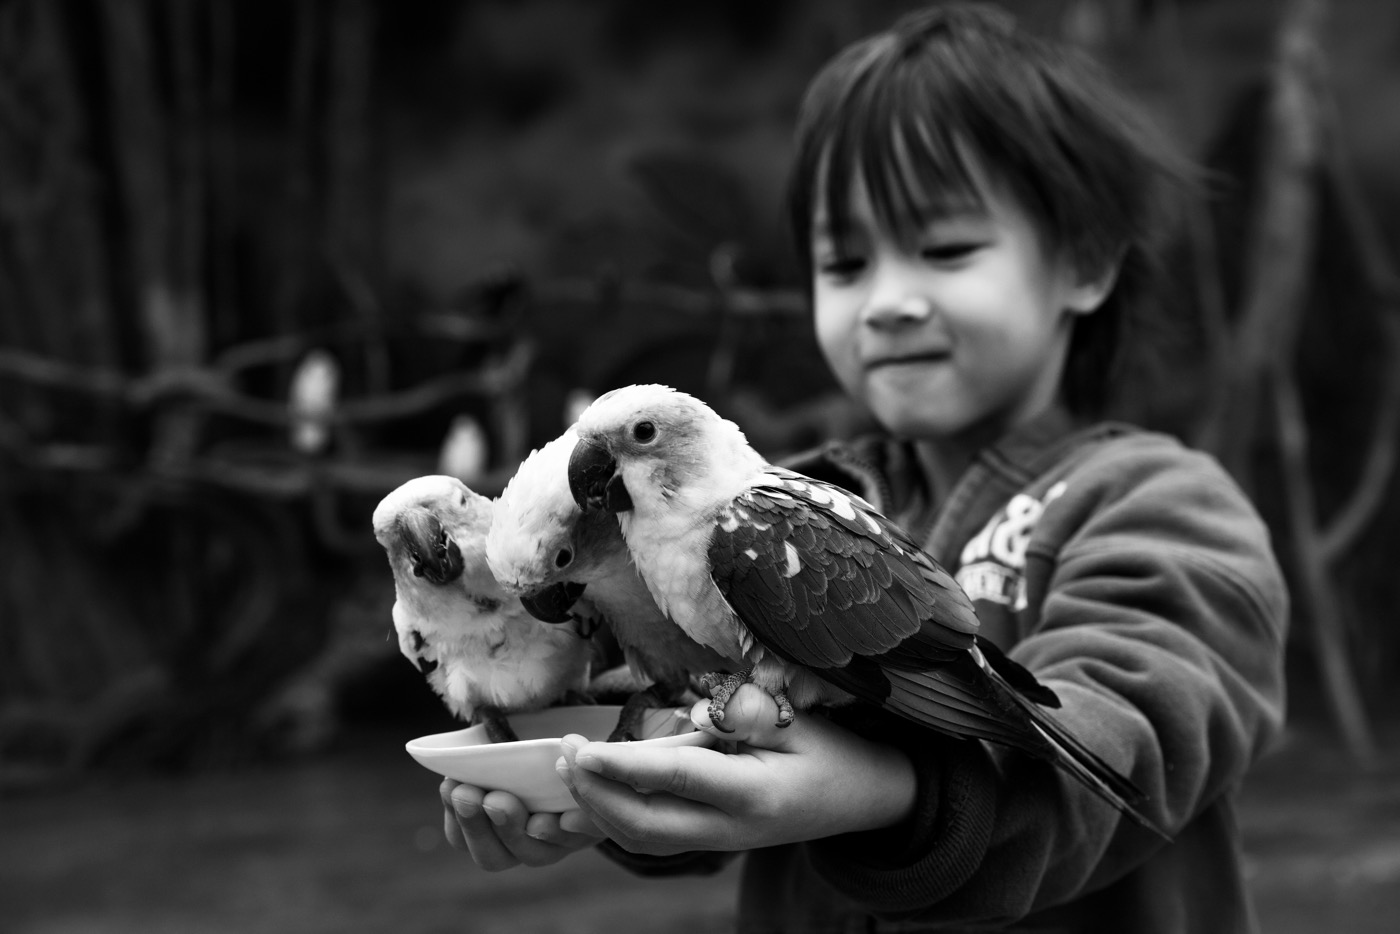 Heidi holding parakeets at the Kunming Zoo